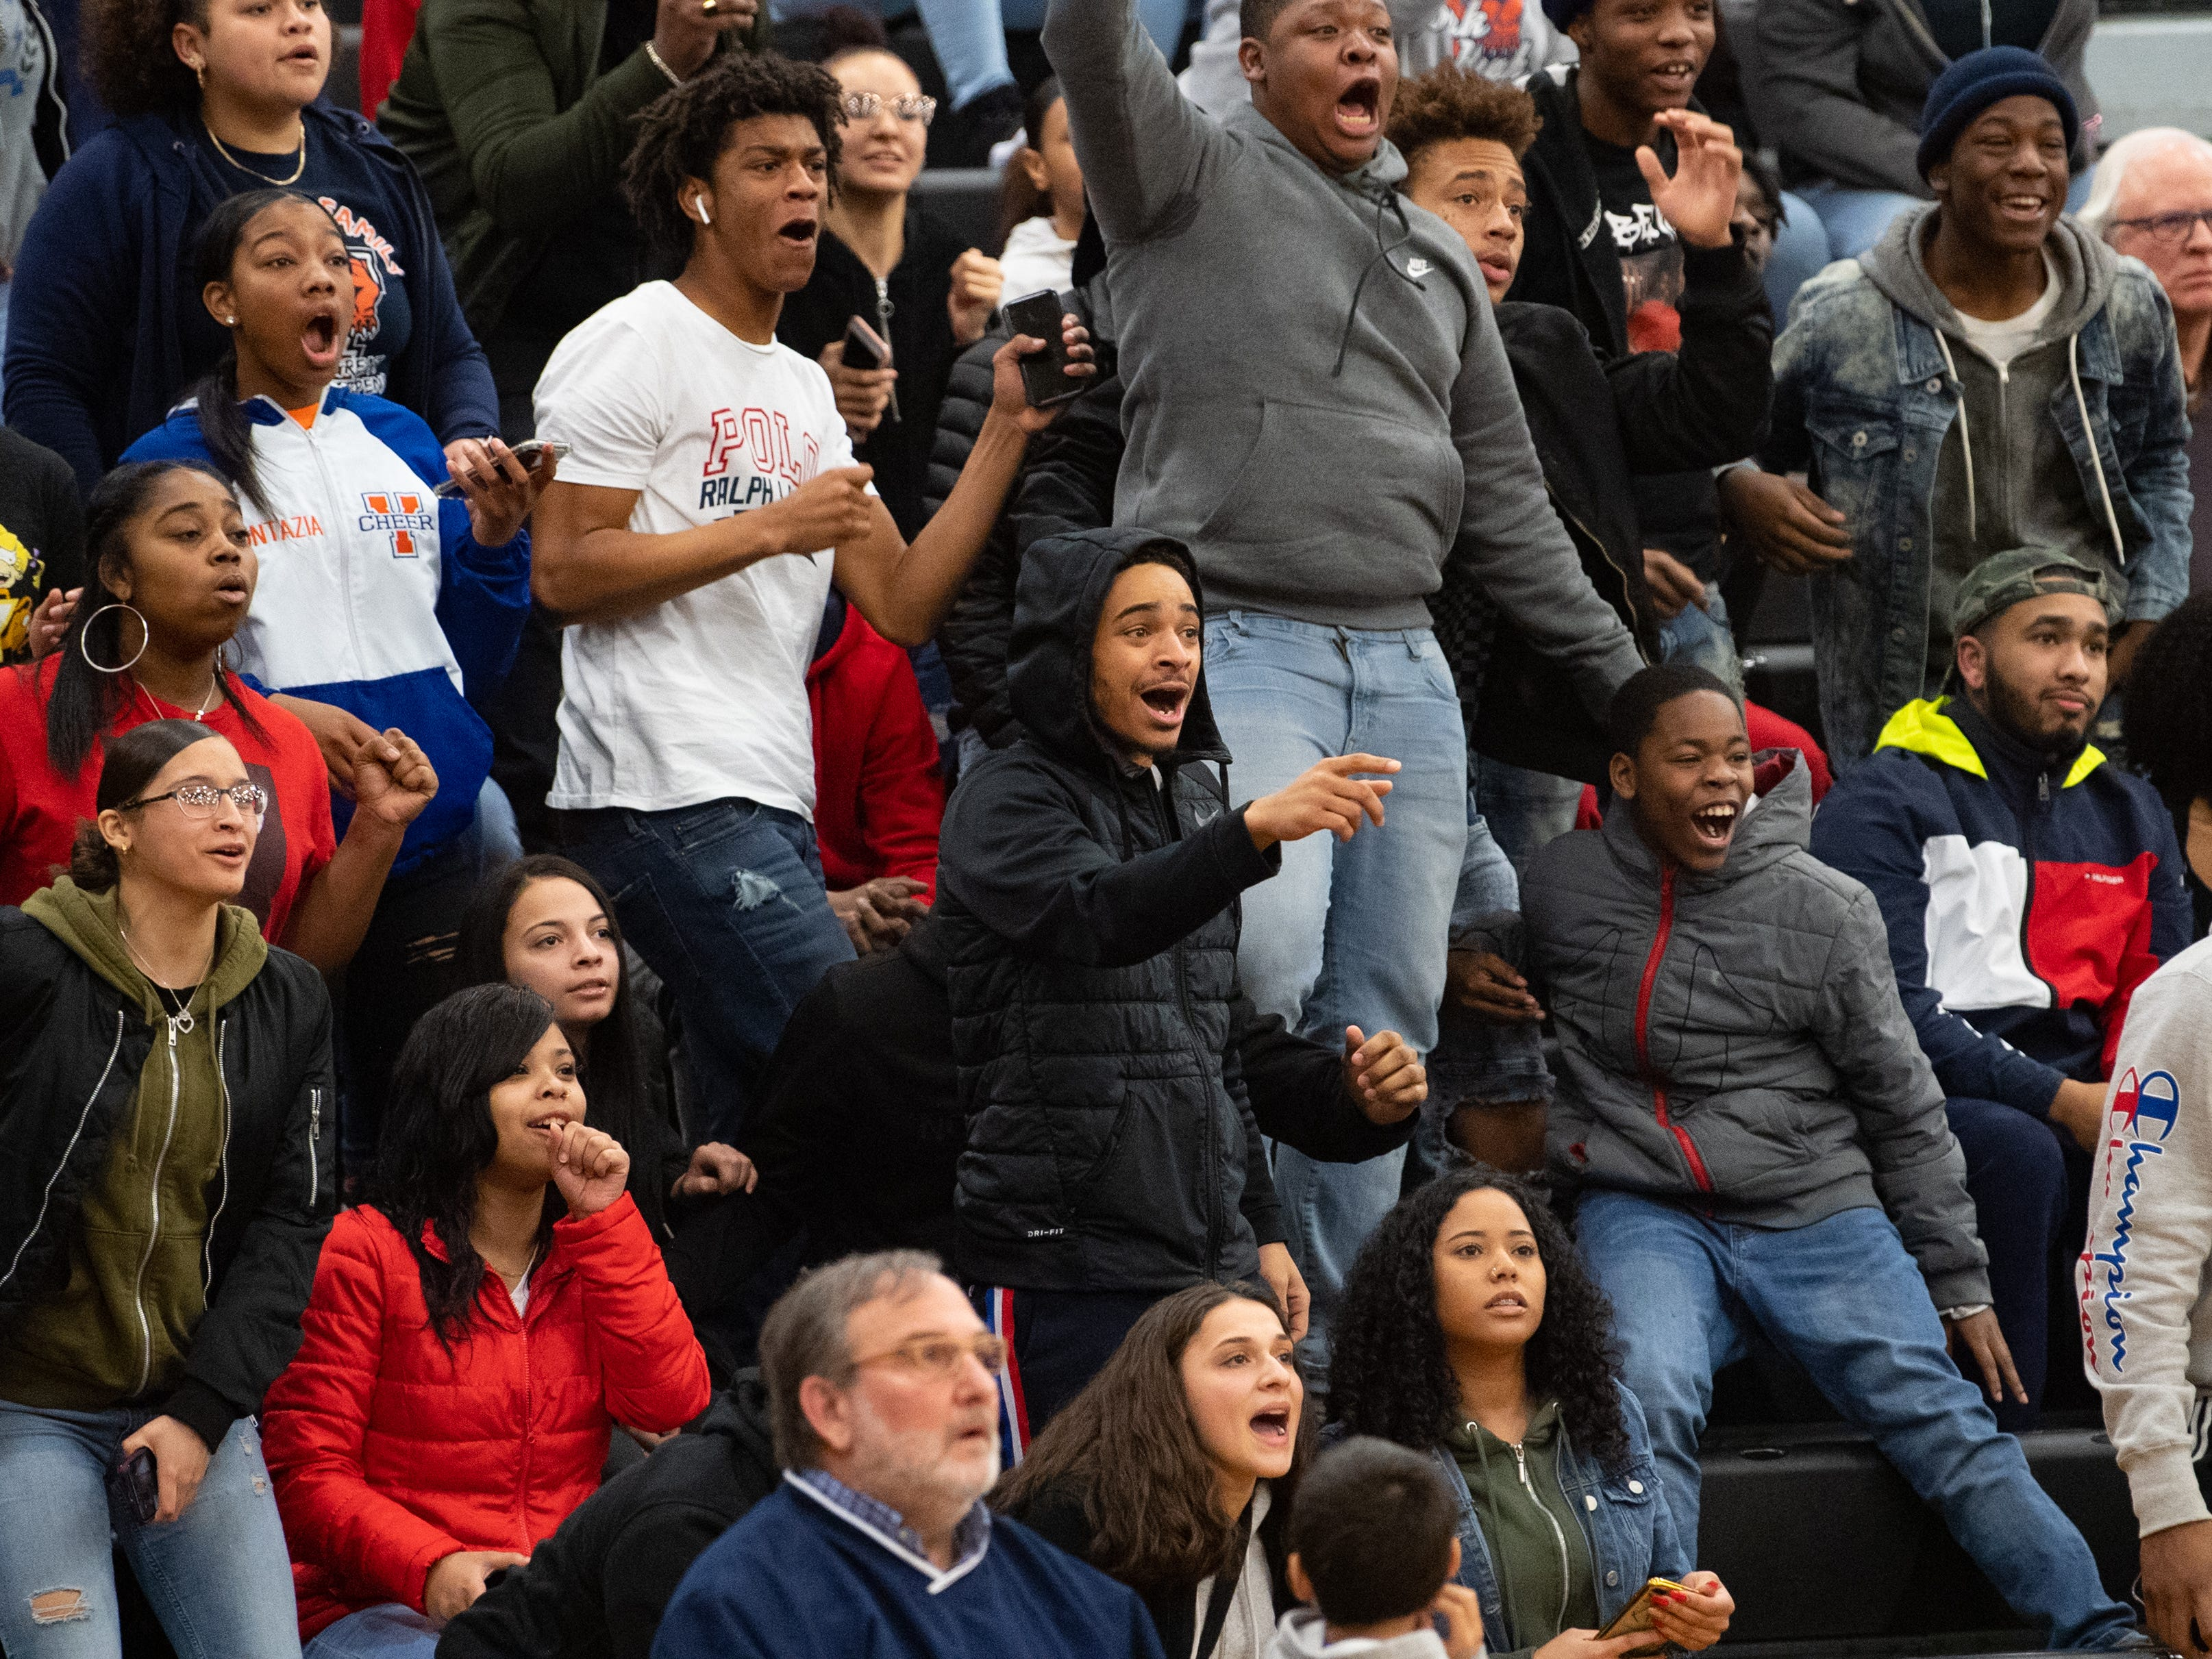 York High fans go crazy after a deep three pointer during the boys' basketball game between Harrisburg High and York High, Wednesday, January 23, 2019 at Harrisburg High School. The Cougars defeated the Bearcats 69-65.